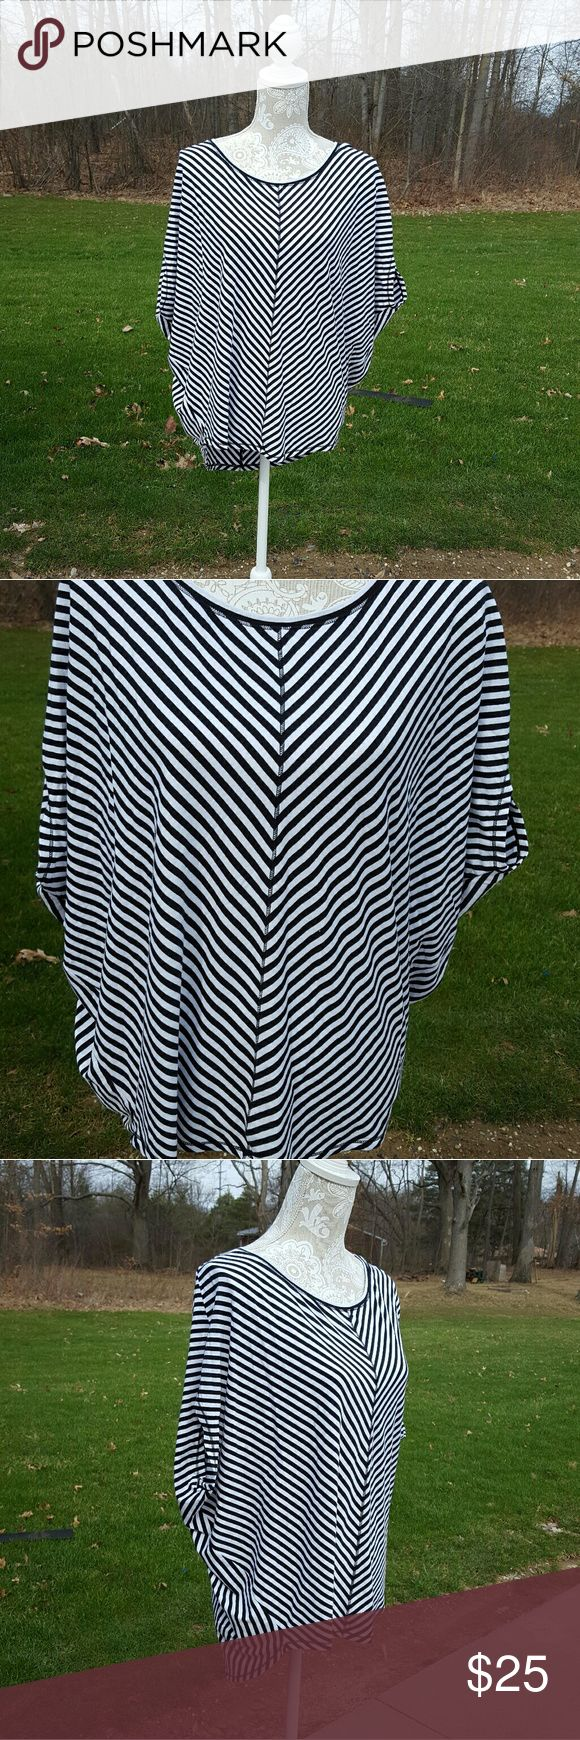 Calia by Carrie Underwood black and white top Worn once Size small Over sized fit  (Can fit up to a large) Short sleeves No Trades CALIA by Carrie Underwood Tops Tees - Short Sleeve